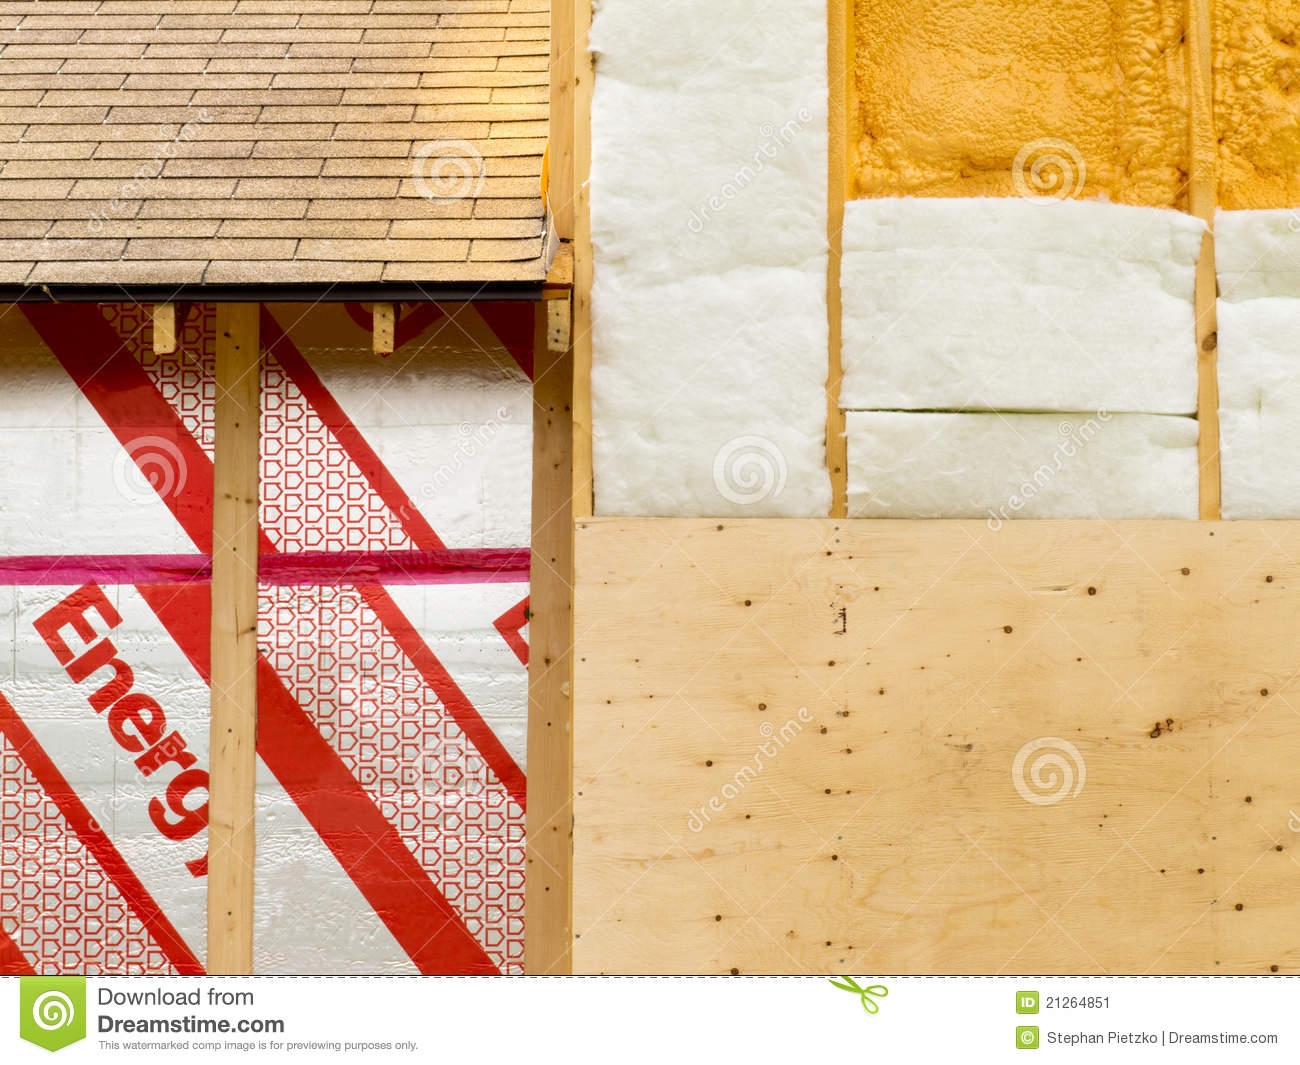 Wall Insulation To Save Heating Energy Stock Image - Image of